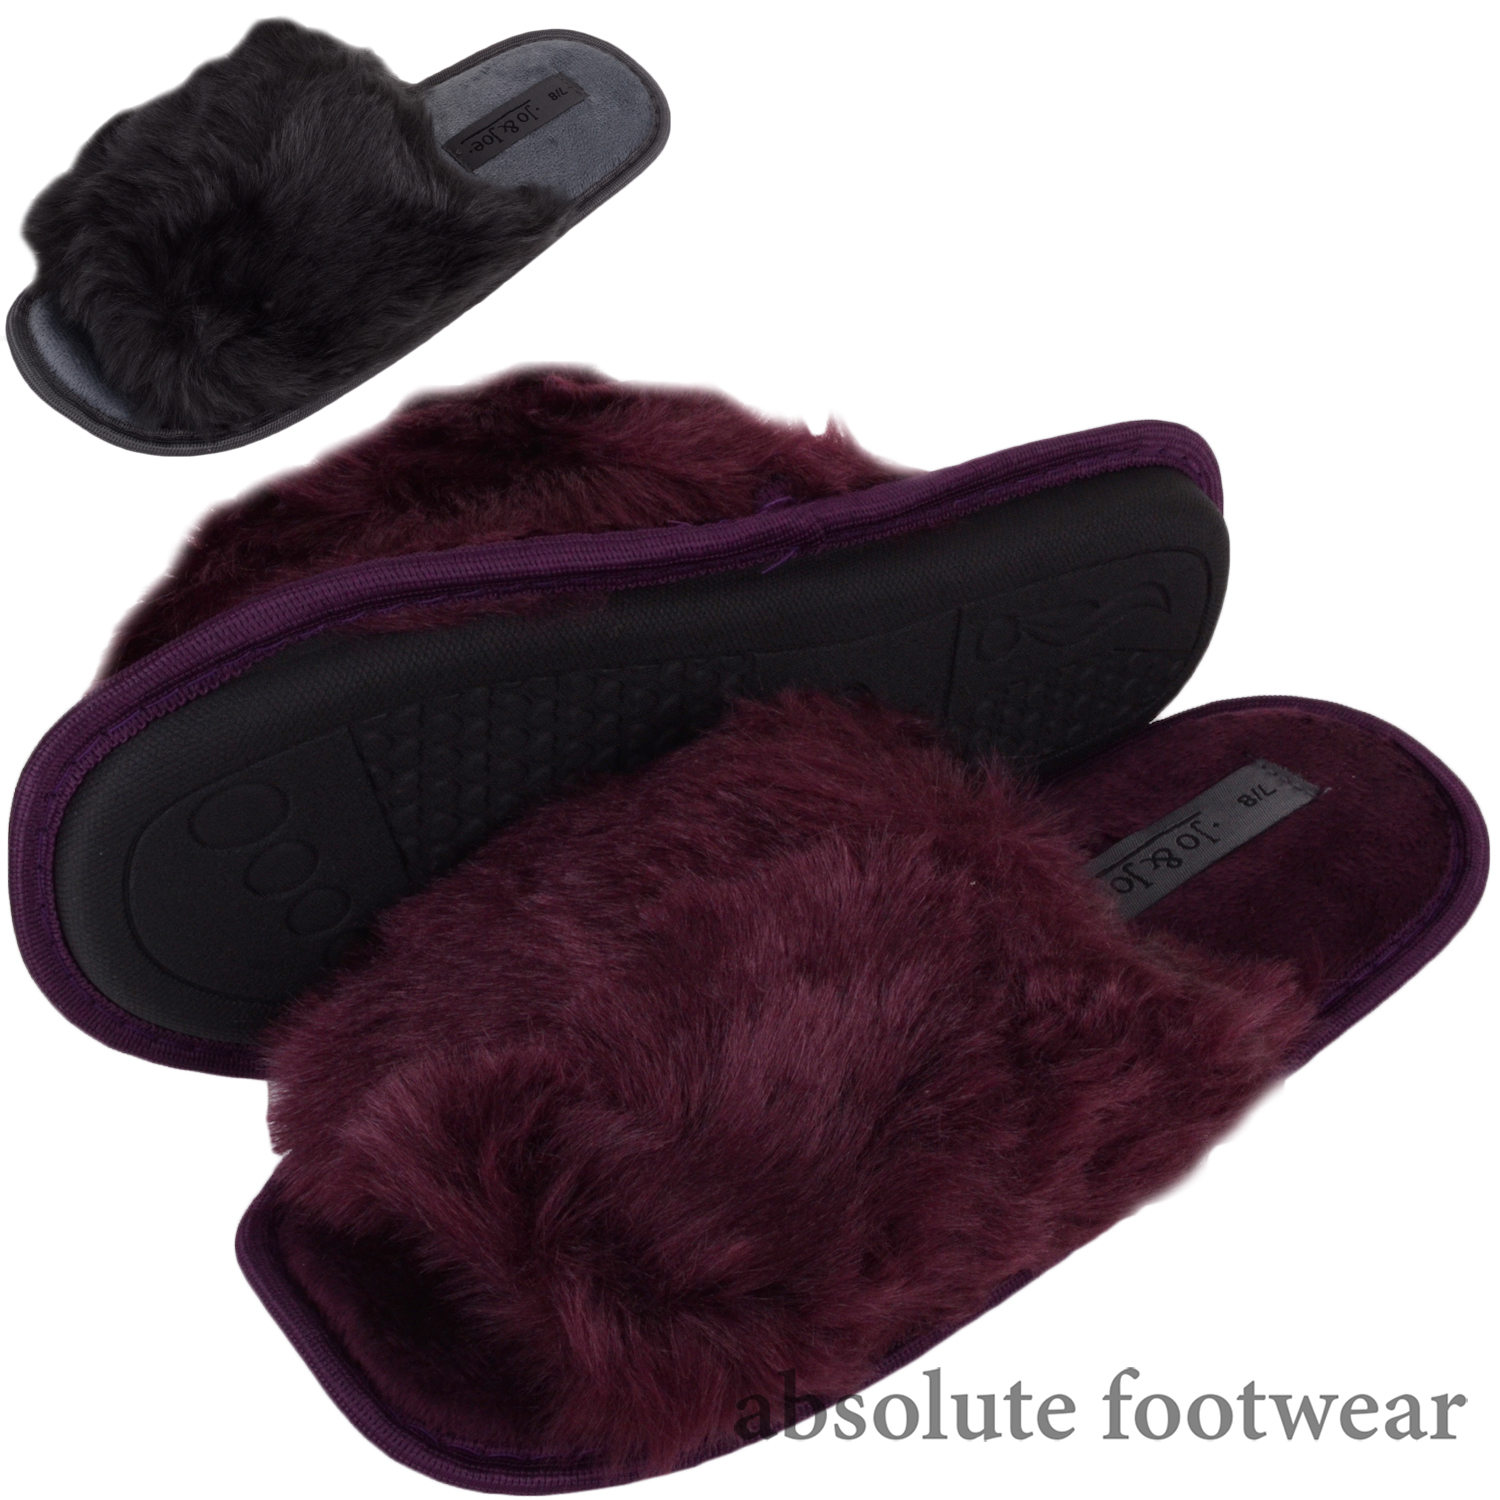 Shoes with Faux Fur Uppers Womens Slip On Slider Mules Ladies Slippers